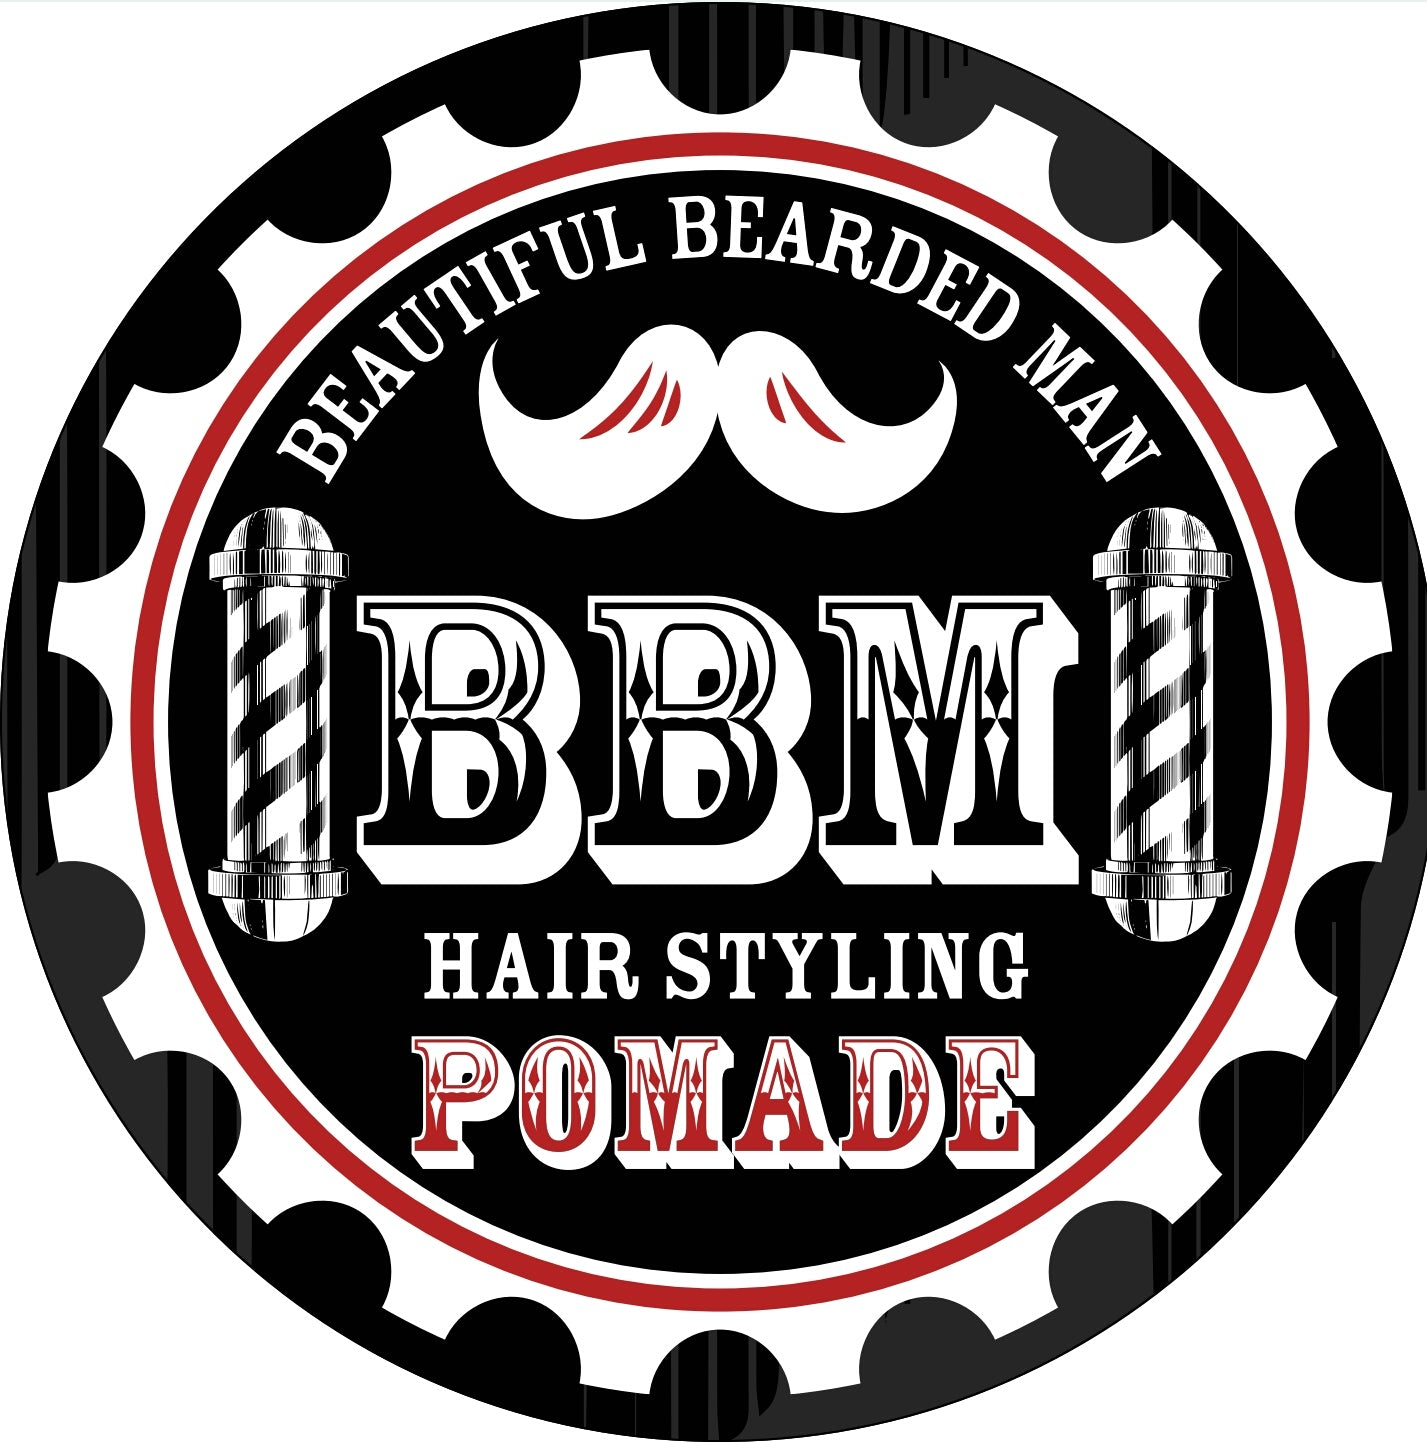 BBM Hair Pomade wholesale - BEAUTIFUL BEARDED MAN